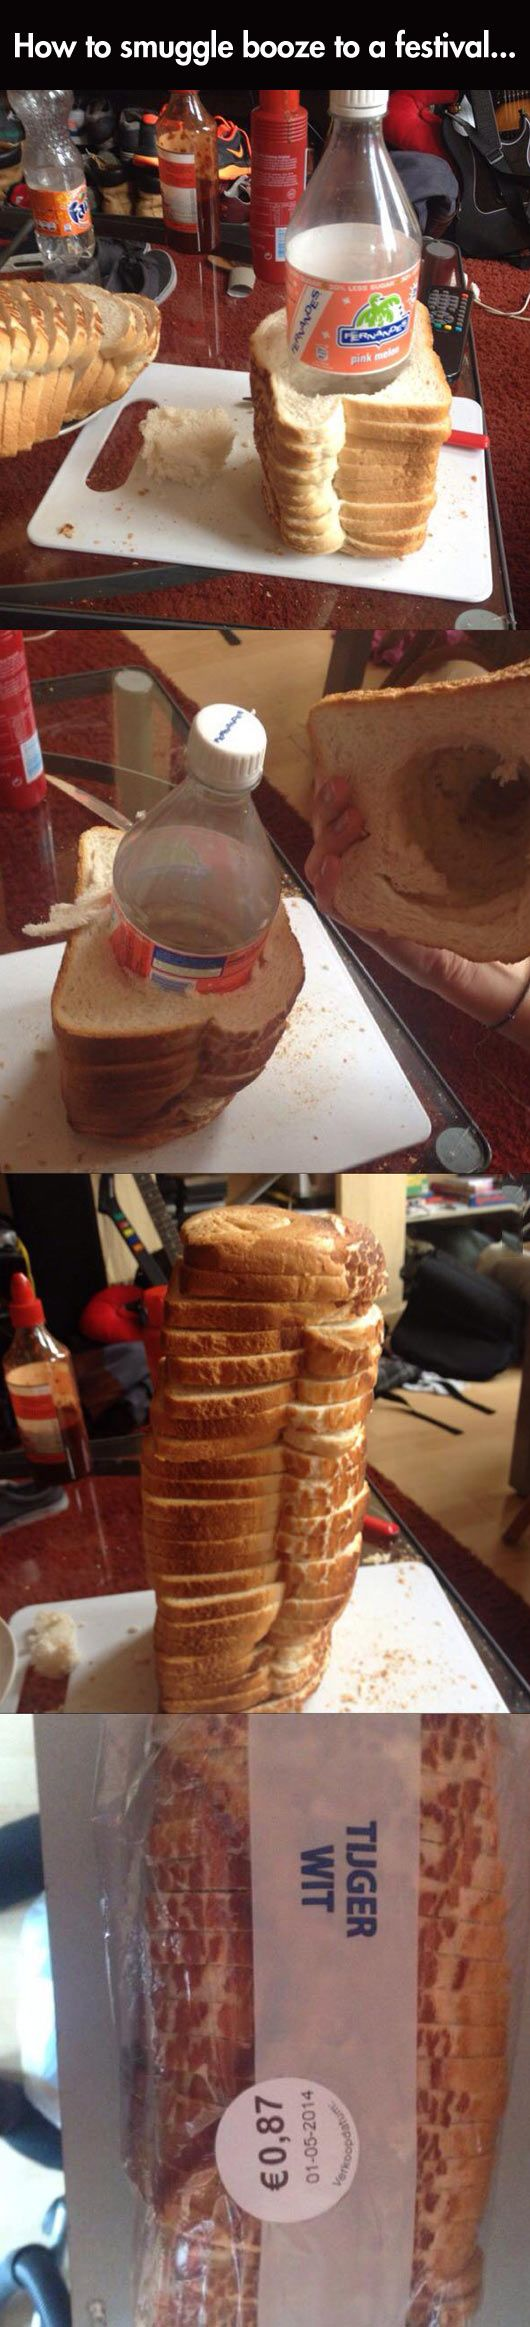 Oh This? It's Just Bread Officer // funny pictures - funny photos - funny images - funny pics - funny quotes - #lol #humor #funnypictures: Ideas, Humor Funnypictures, Festivals, Bread, Funny Images, Funny Quotes, Smuggle Booze, Cruise